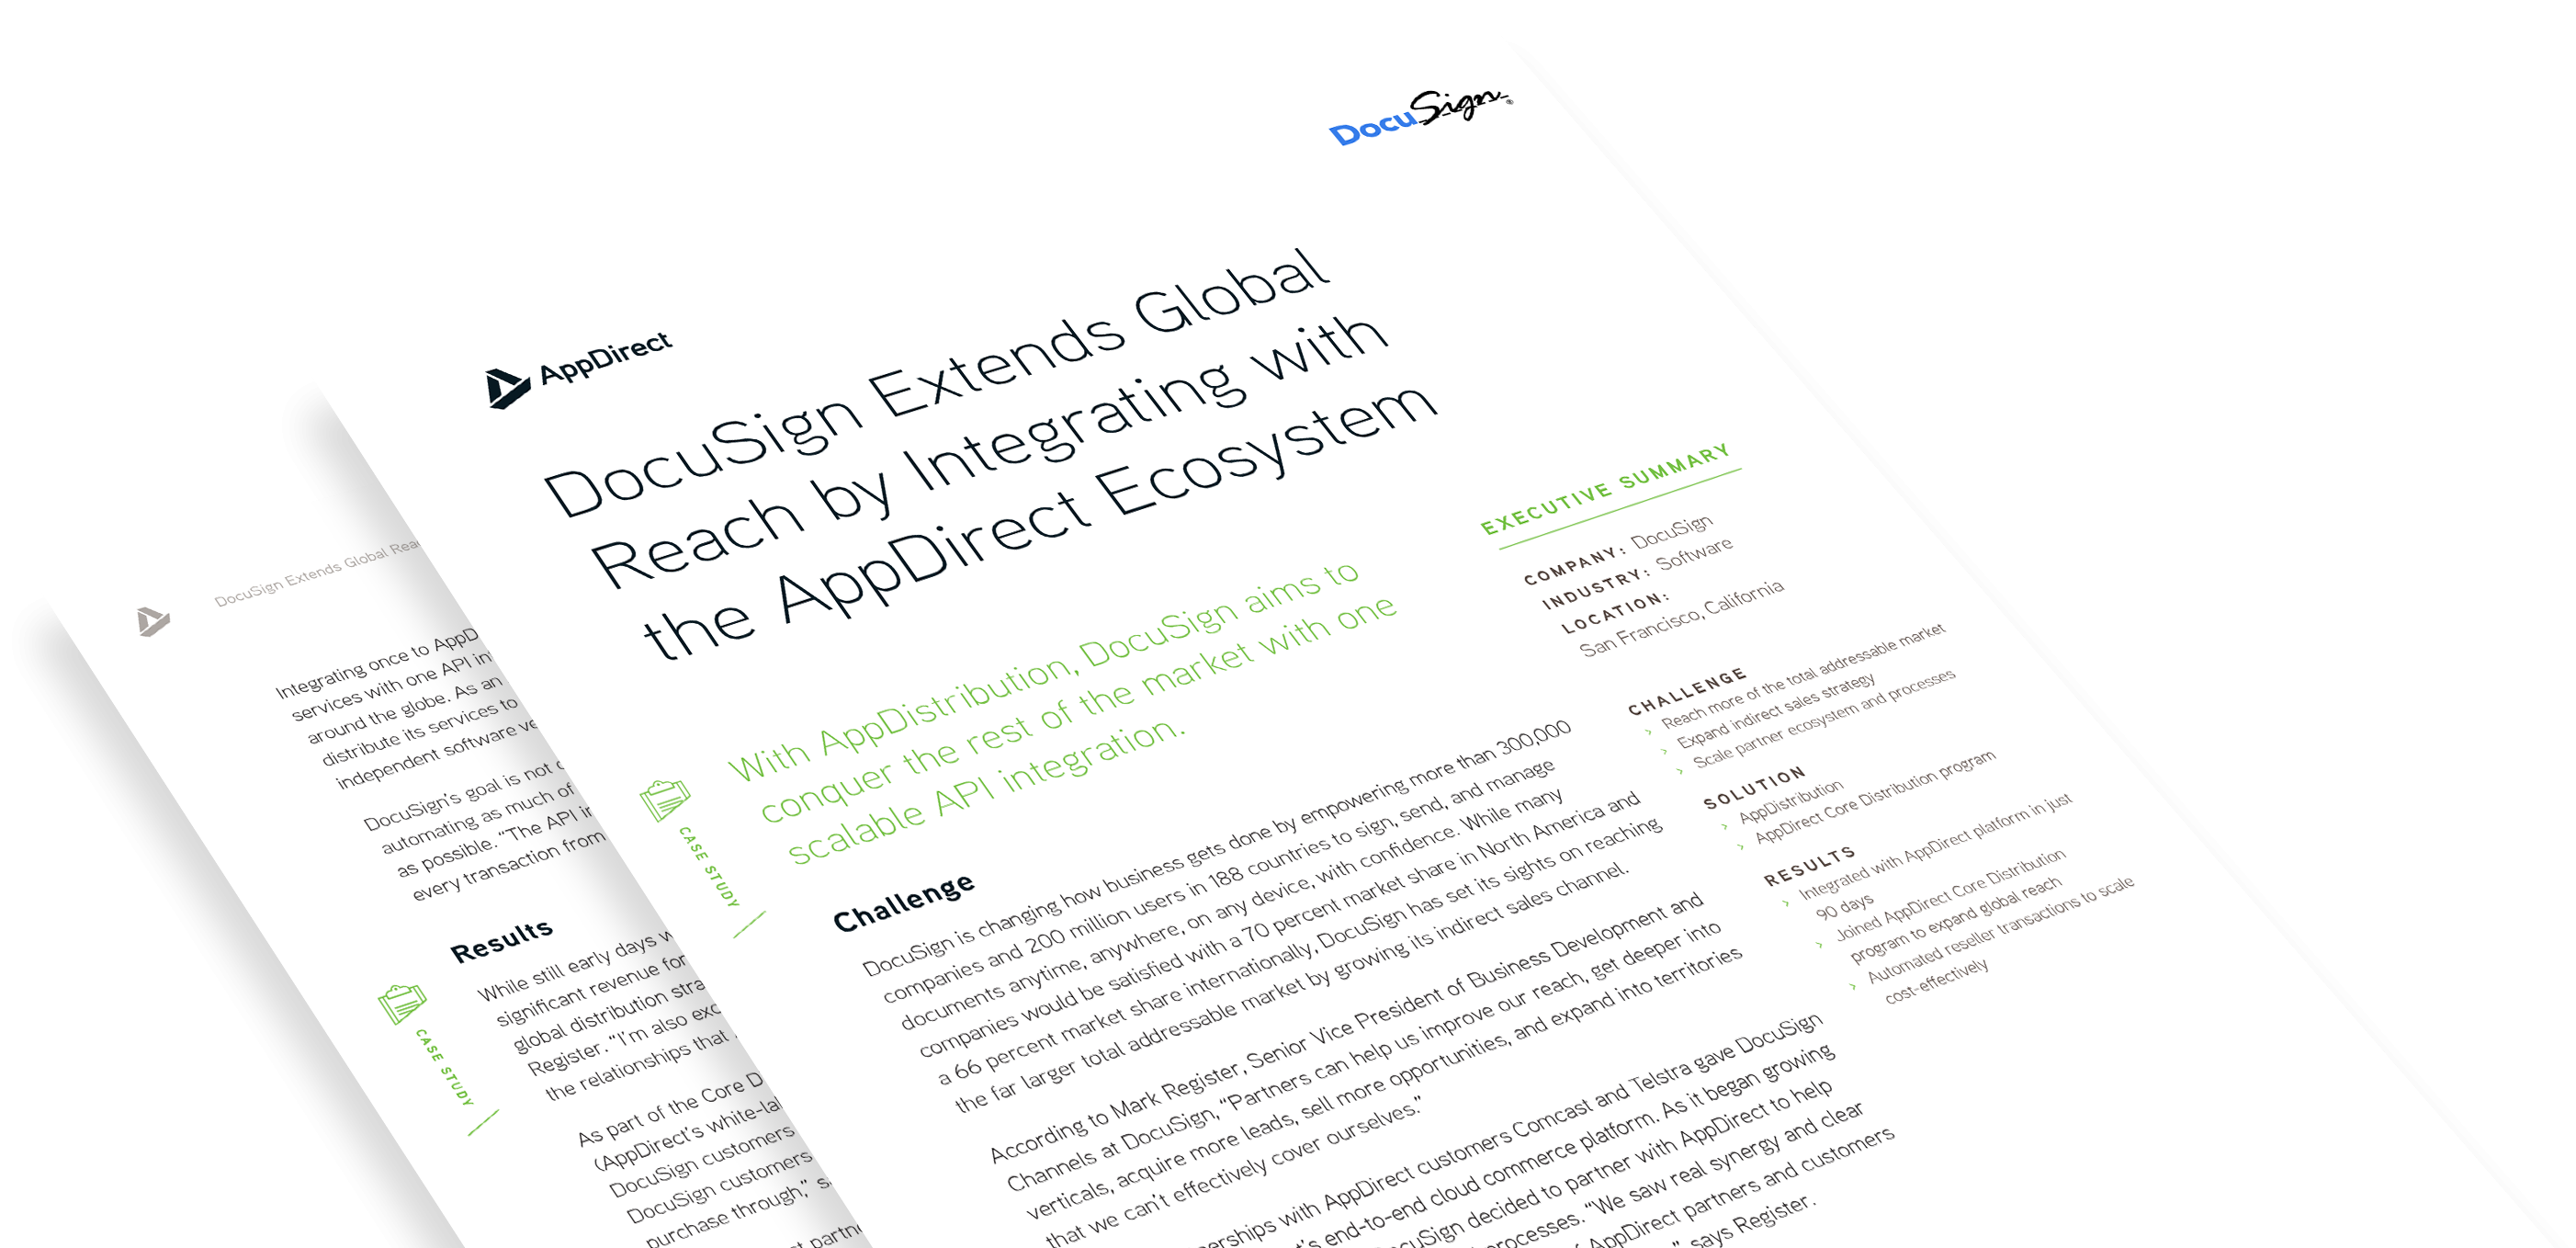 DocuSign Extends Global Reach by Integrating with the AppDirect Ecosystem